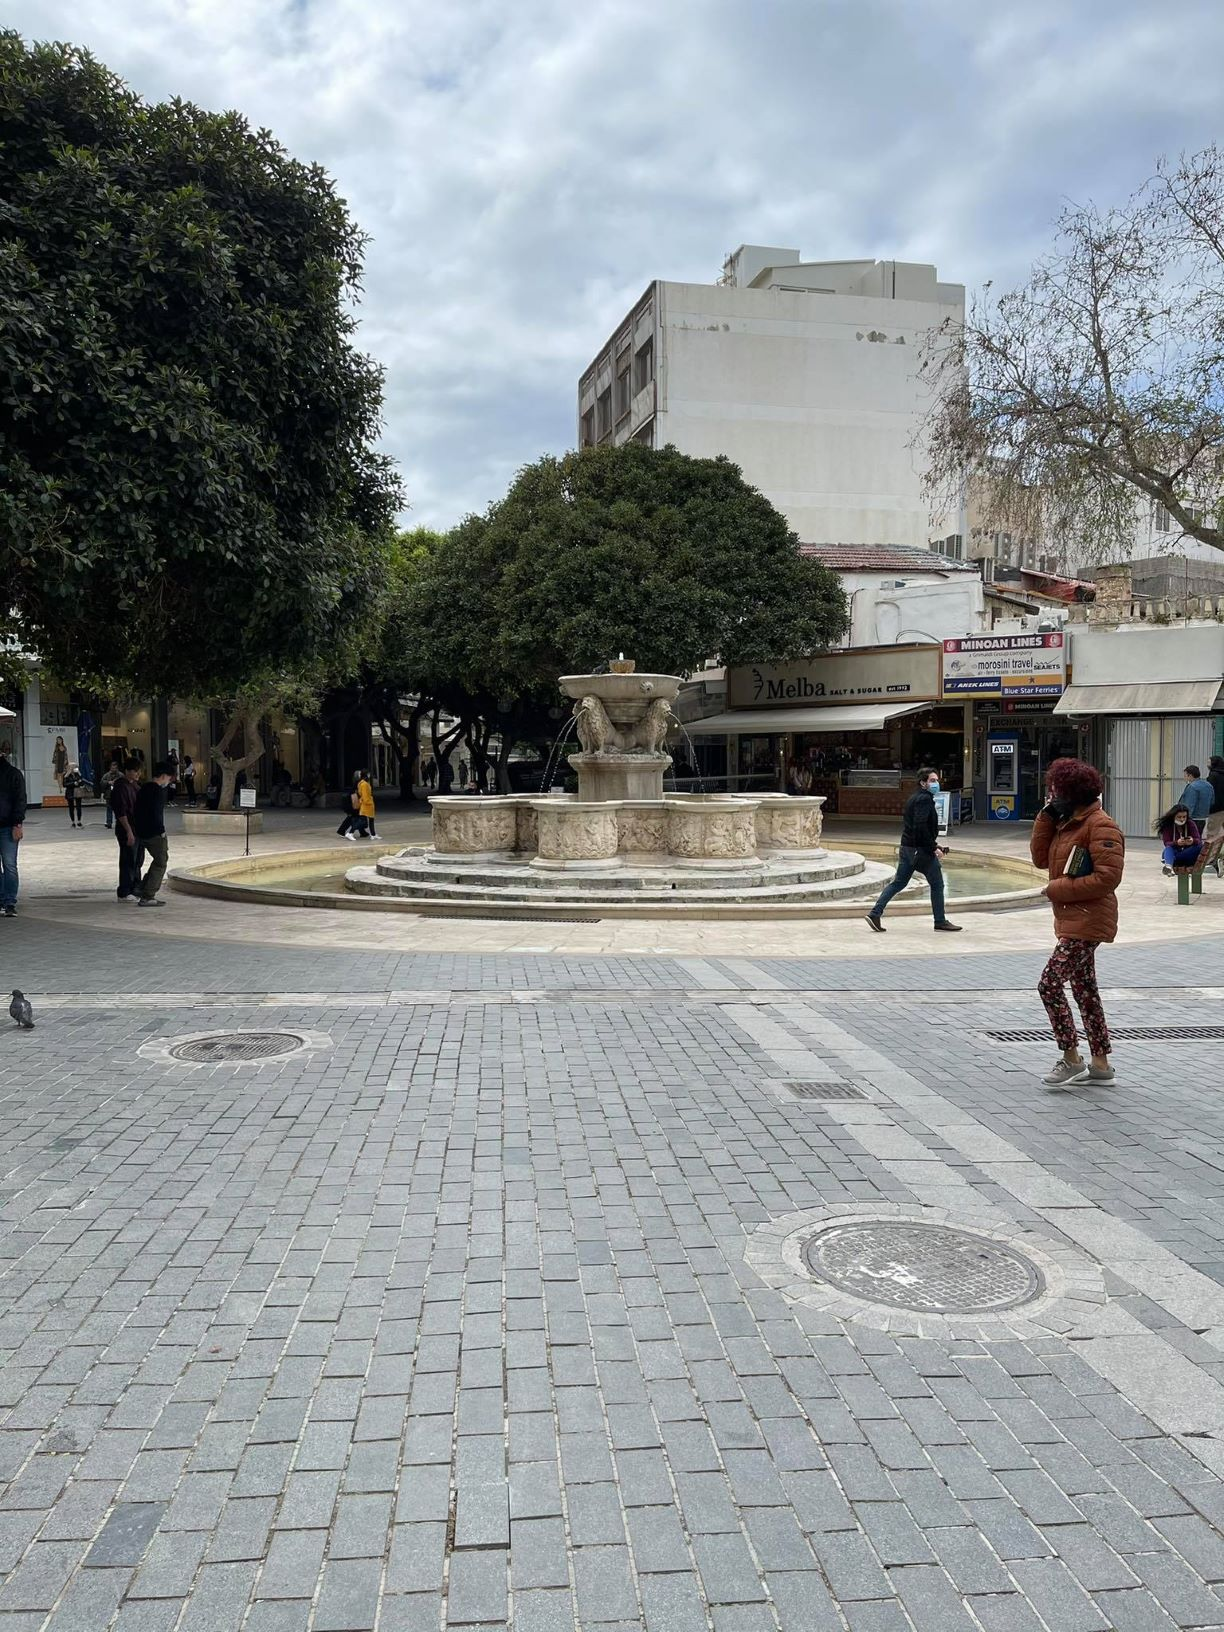 Heraklion City Center Excursion Vibes The lions square in Heraklion city center